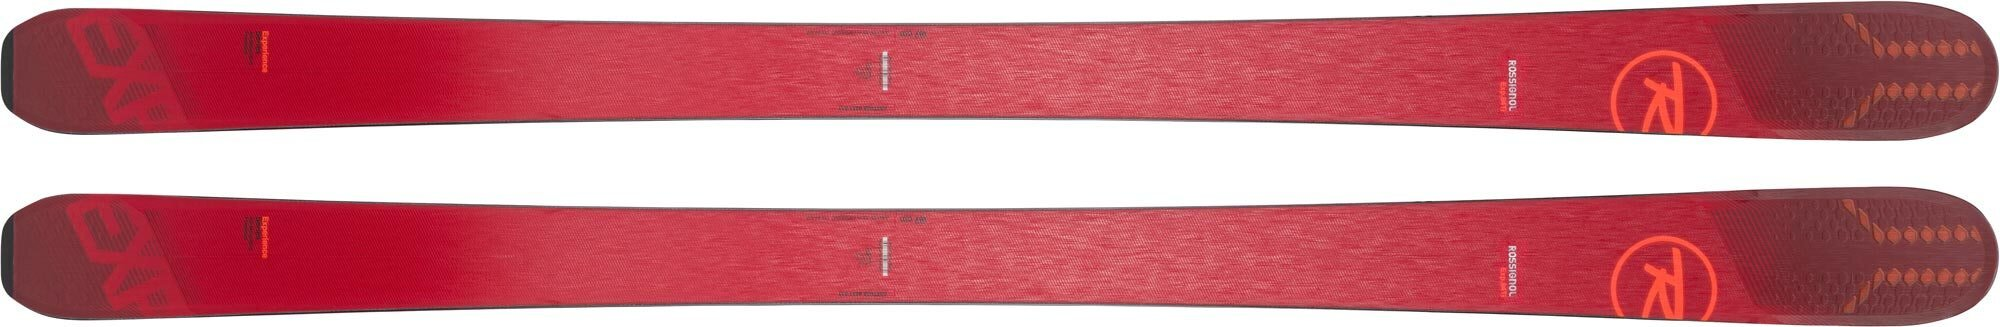 Rossignol EXP 100 HD available in 166cm, 174cm, and 182cm